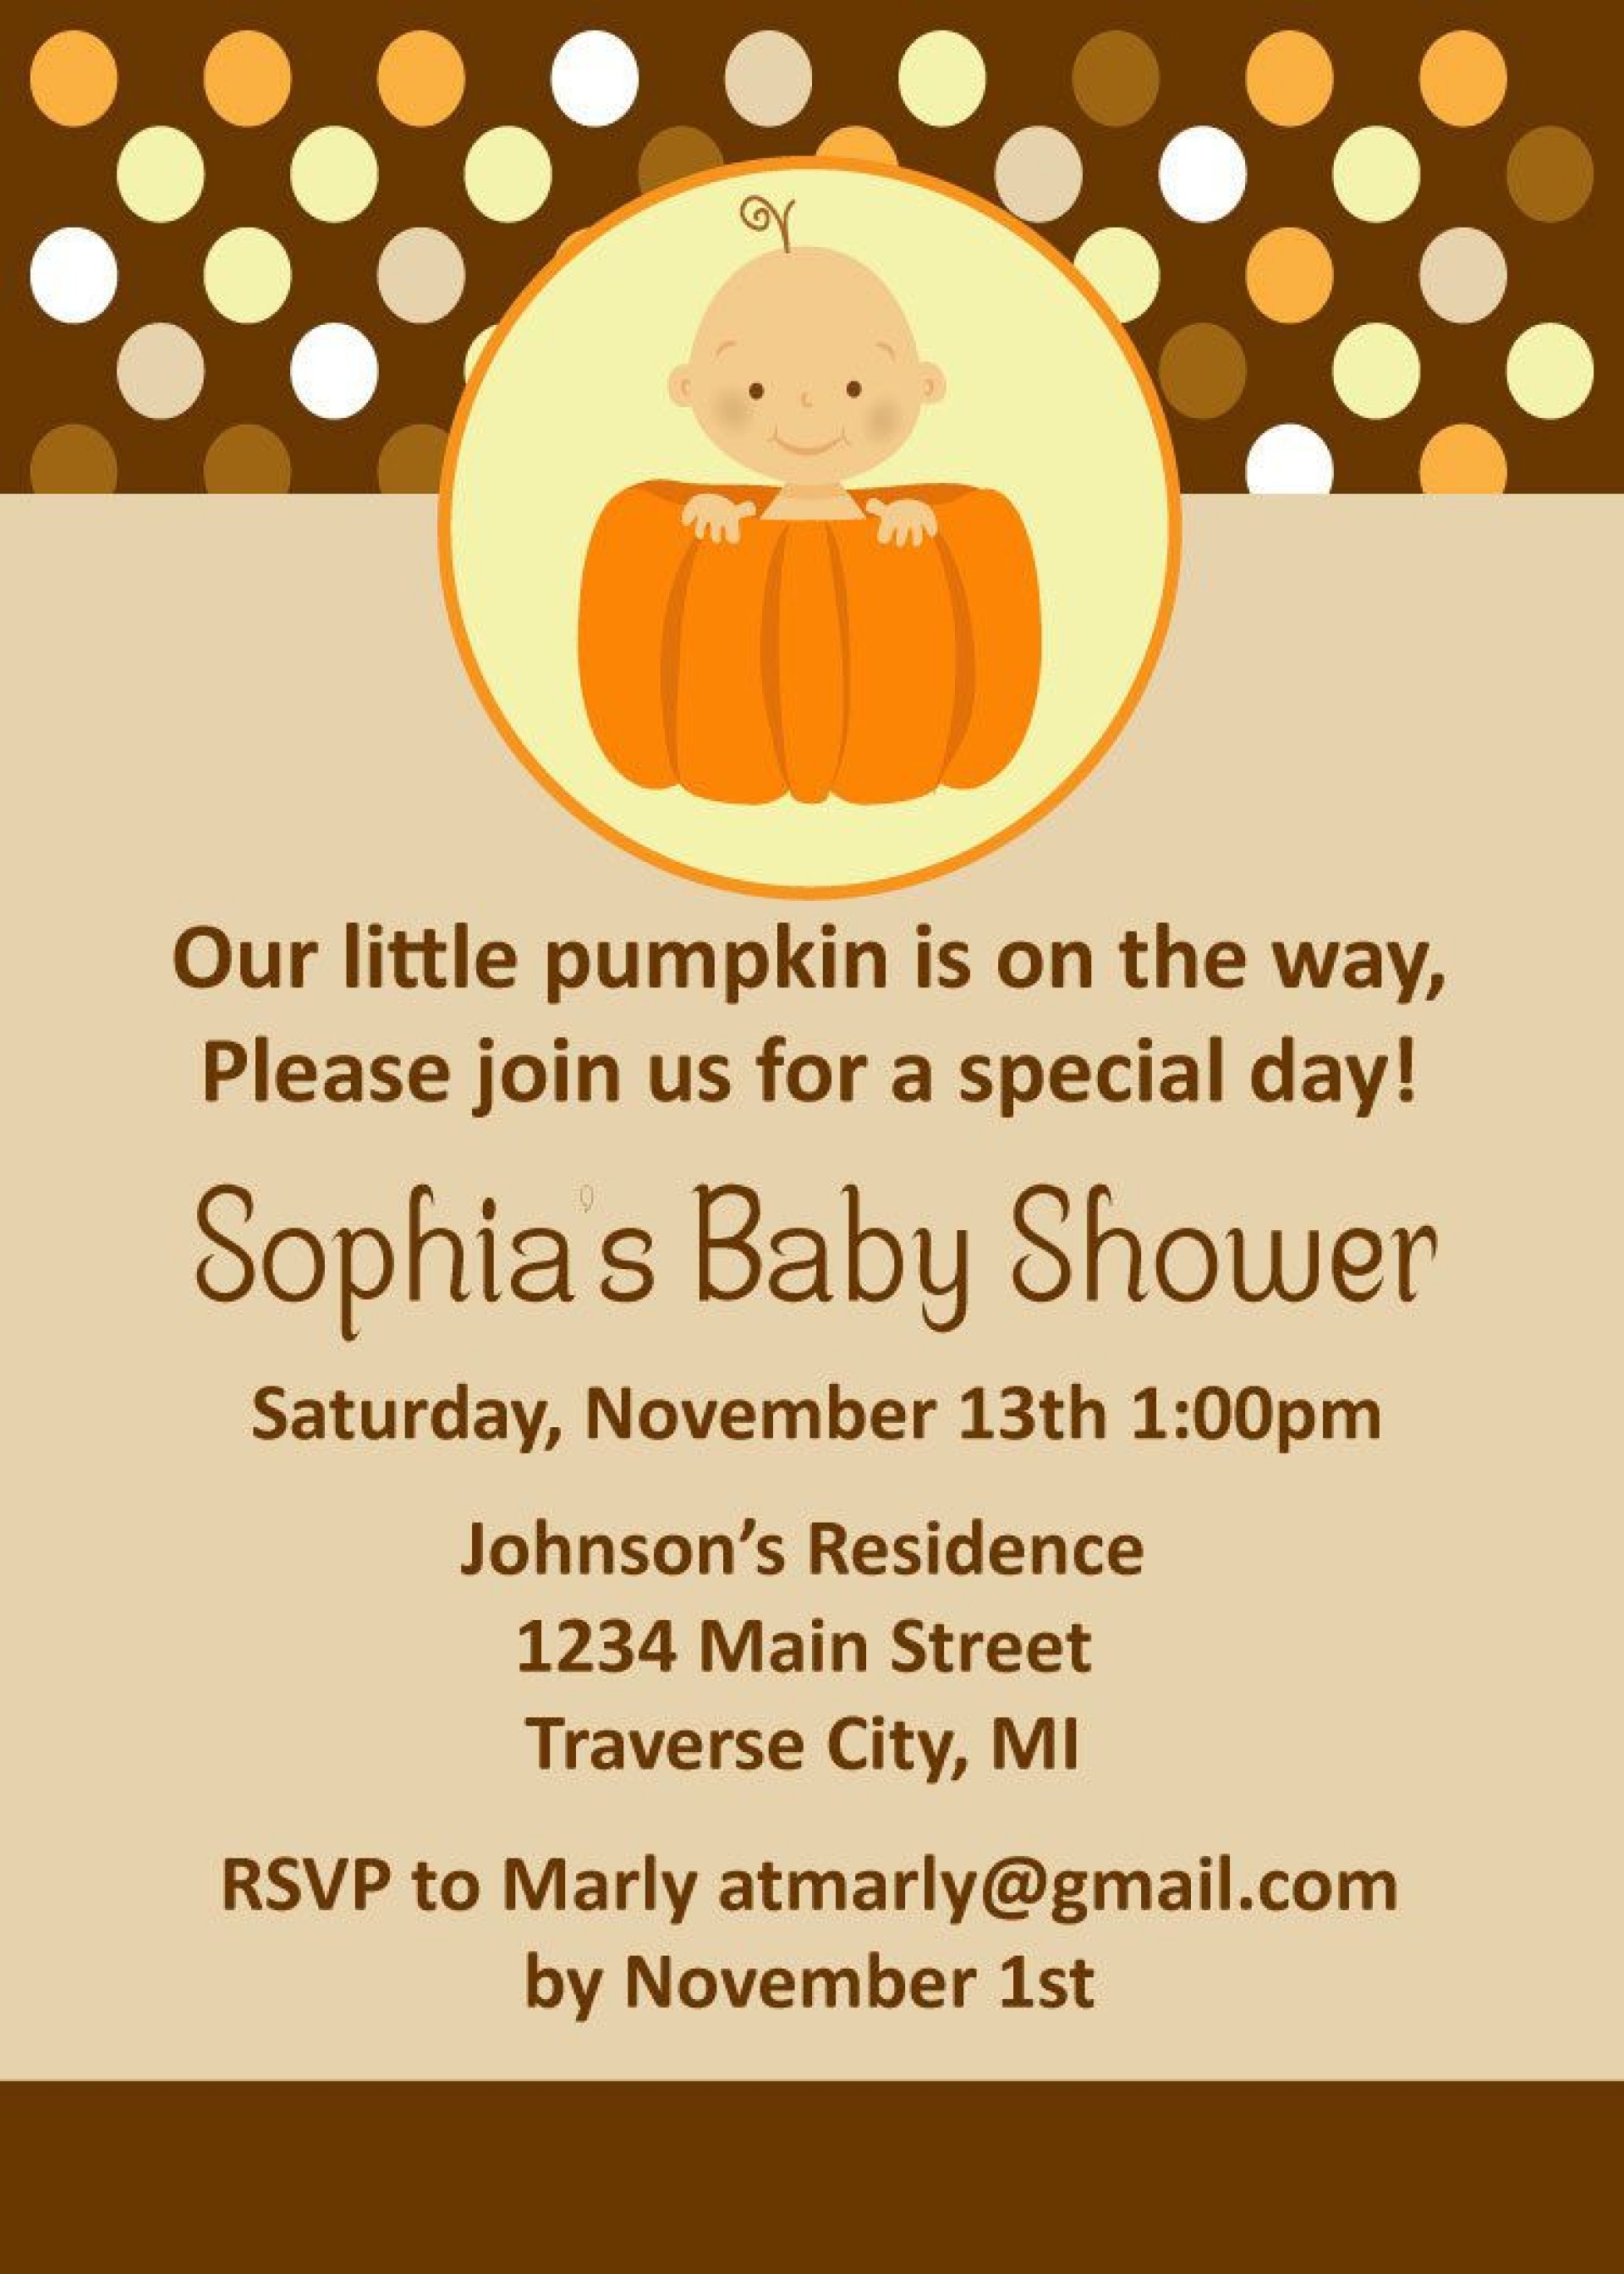 008 Striking Baby Shower Invitation Girl Pumpkin Image  Little1920